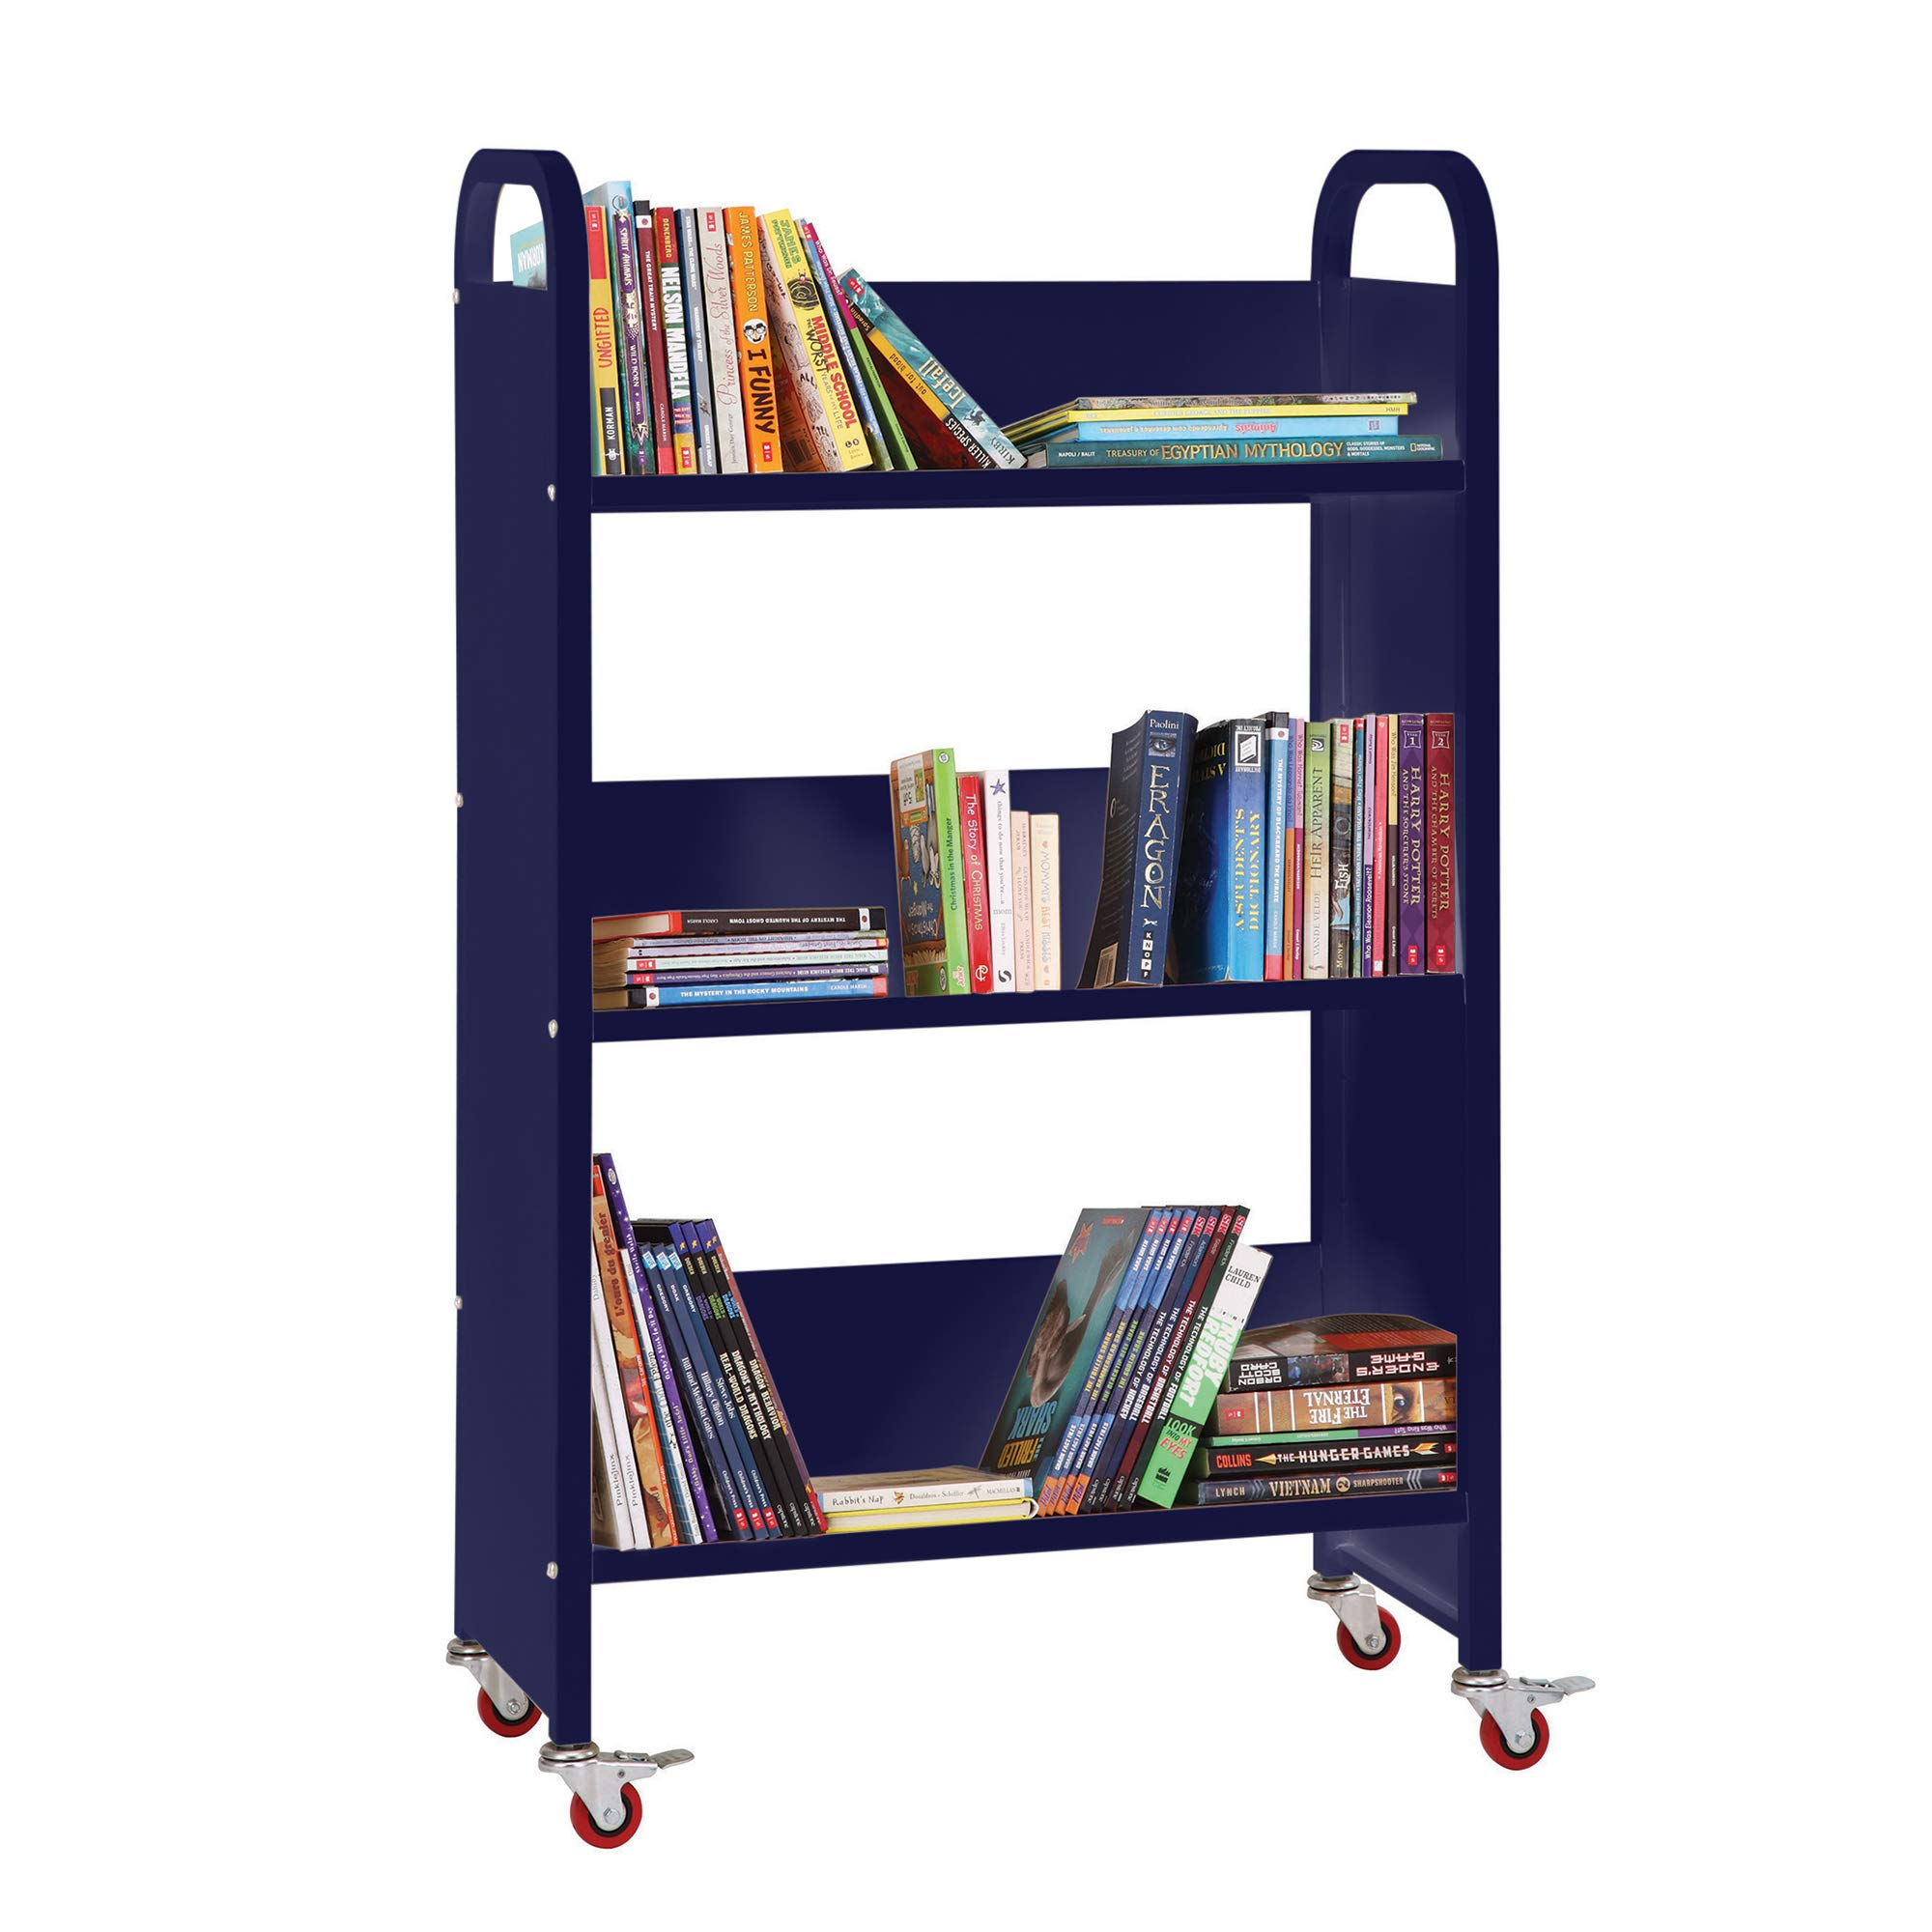 Guidecraft Heavy Duty Three-Shelf Narrow Book Truck - Dark Blue: Rolling Library Book Cart, School Furniture and Office Supply by Guidecraft (Image #2)